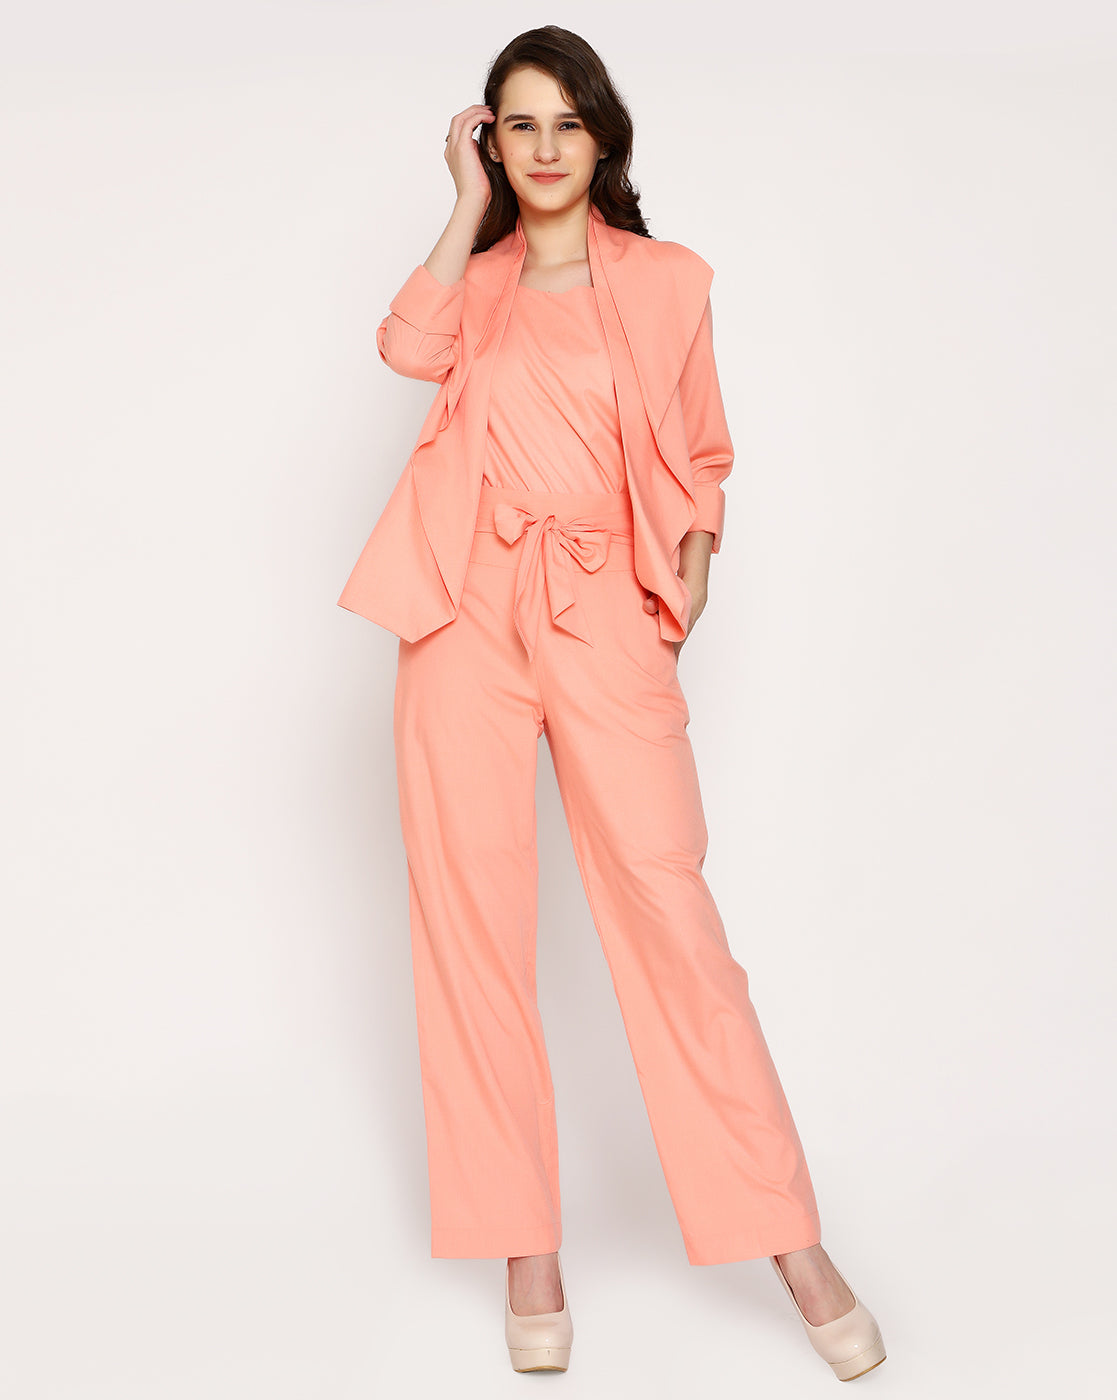 The Sassy Trouser - Flamingo Peach